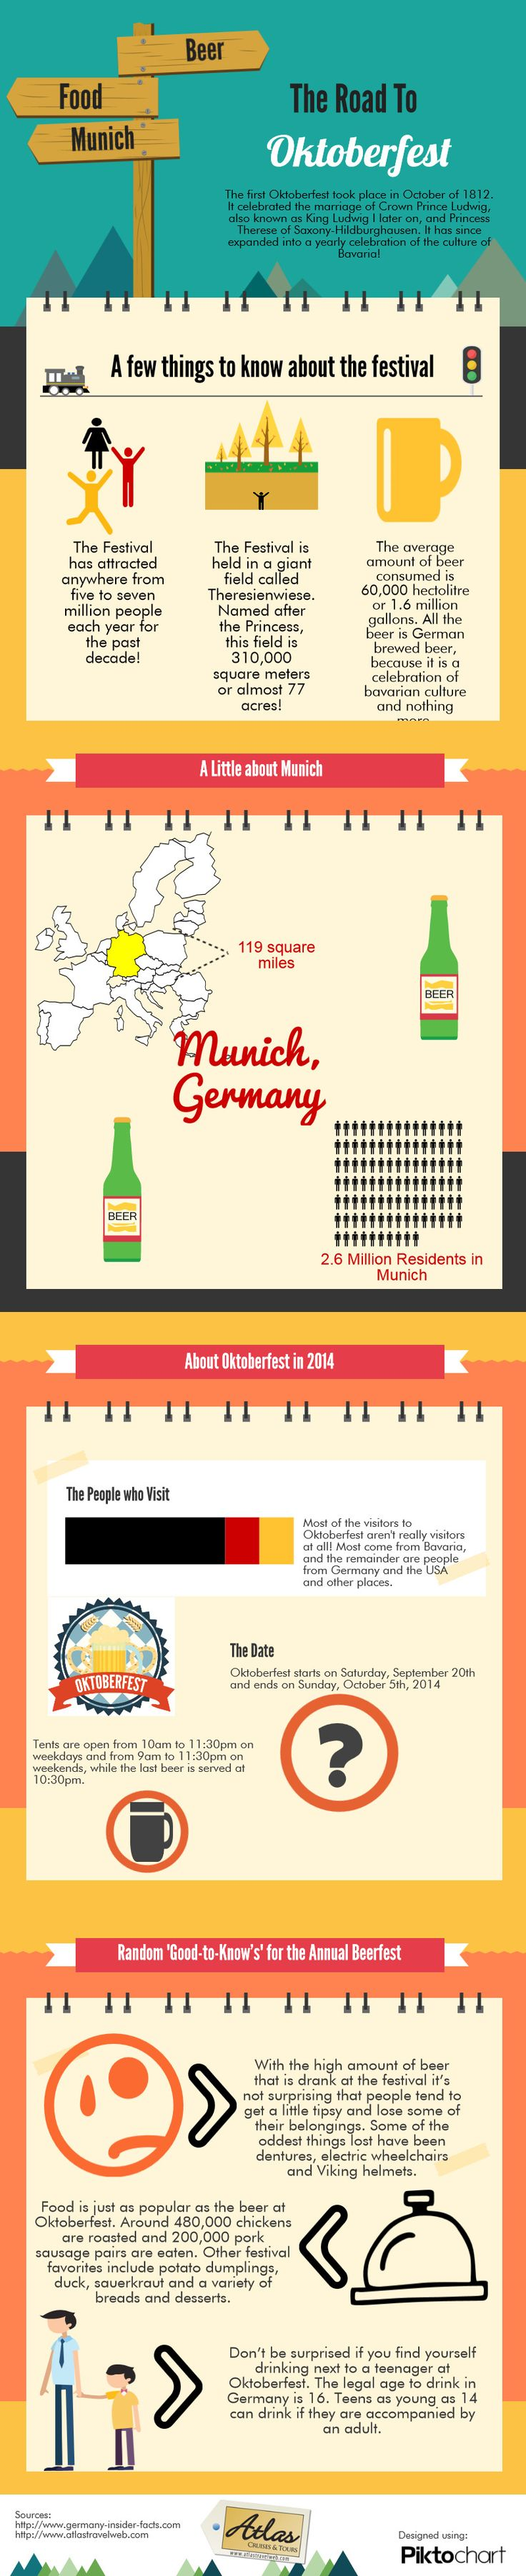 History and interesting facts about Oktoberfest in Germany.